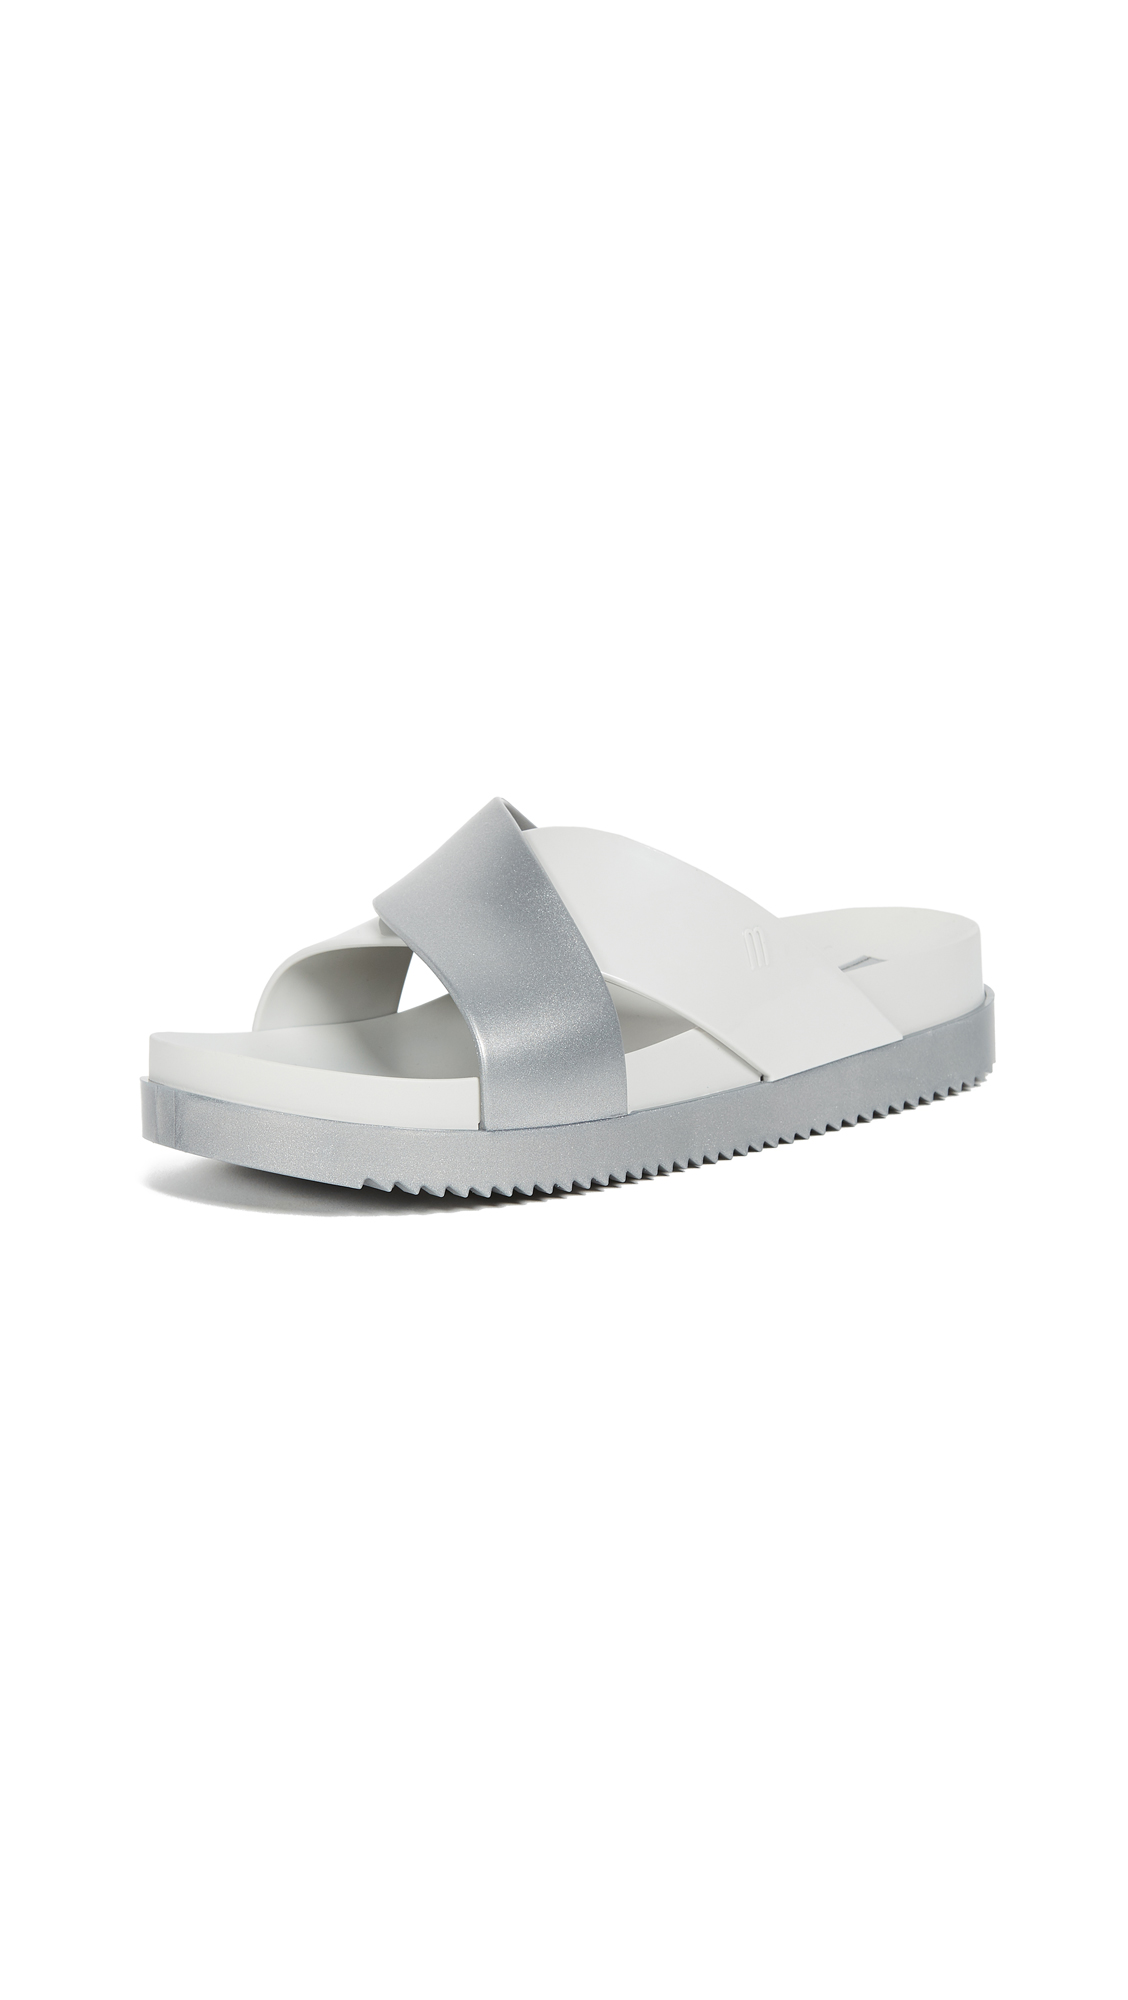 Melissa Cosmic II Crisscross Slides - Light Grey/Silver